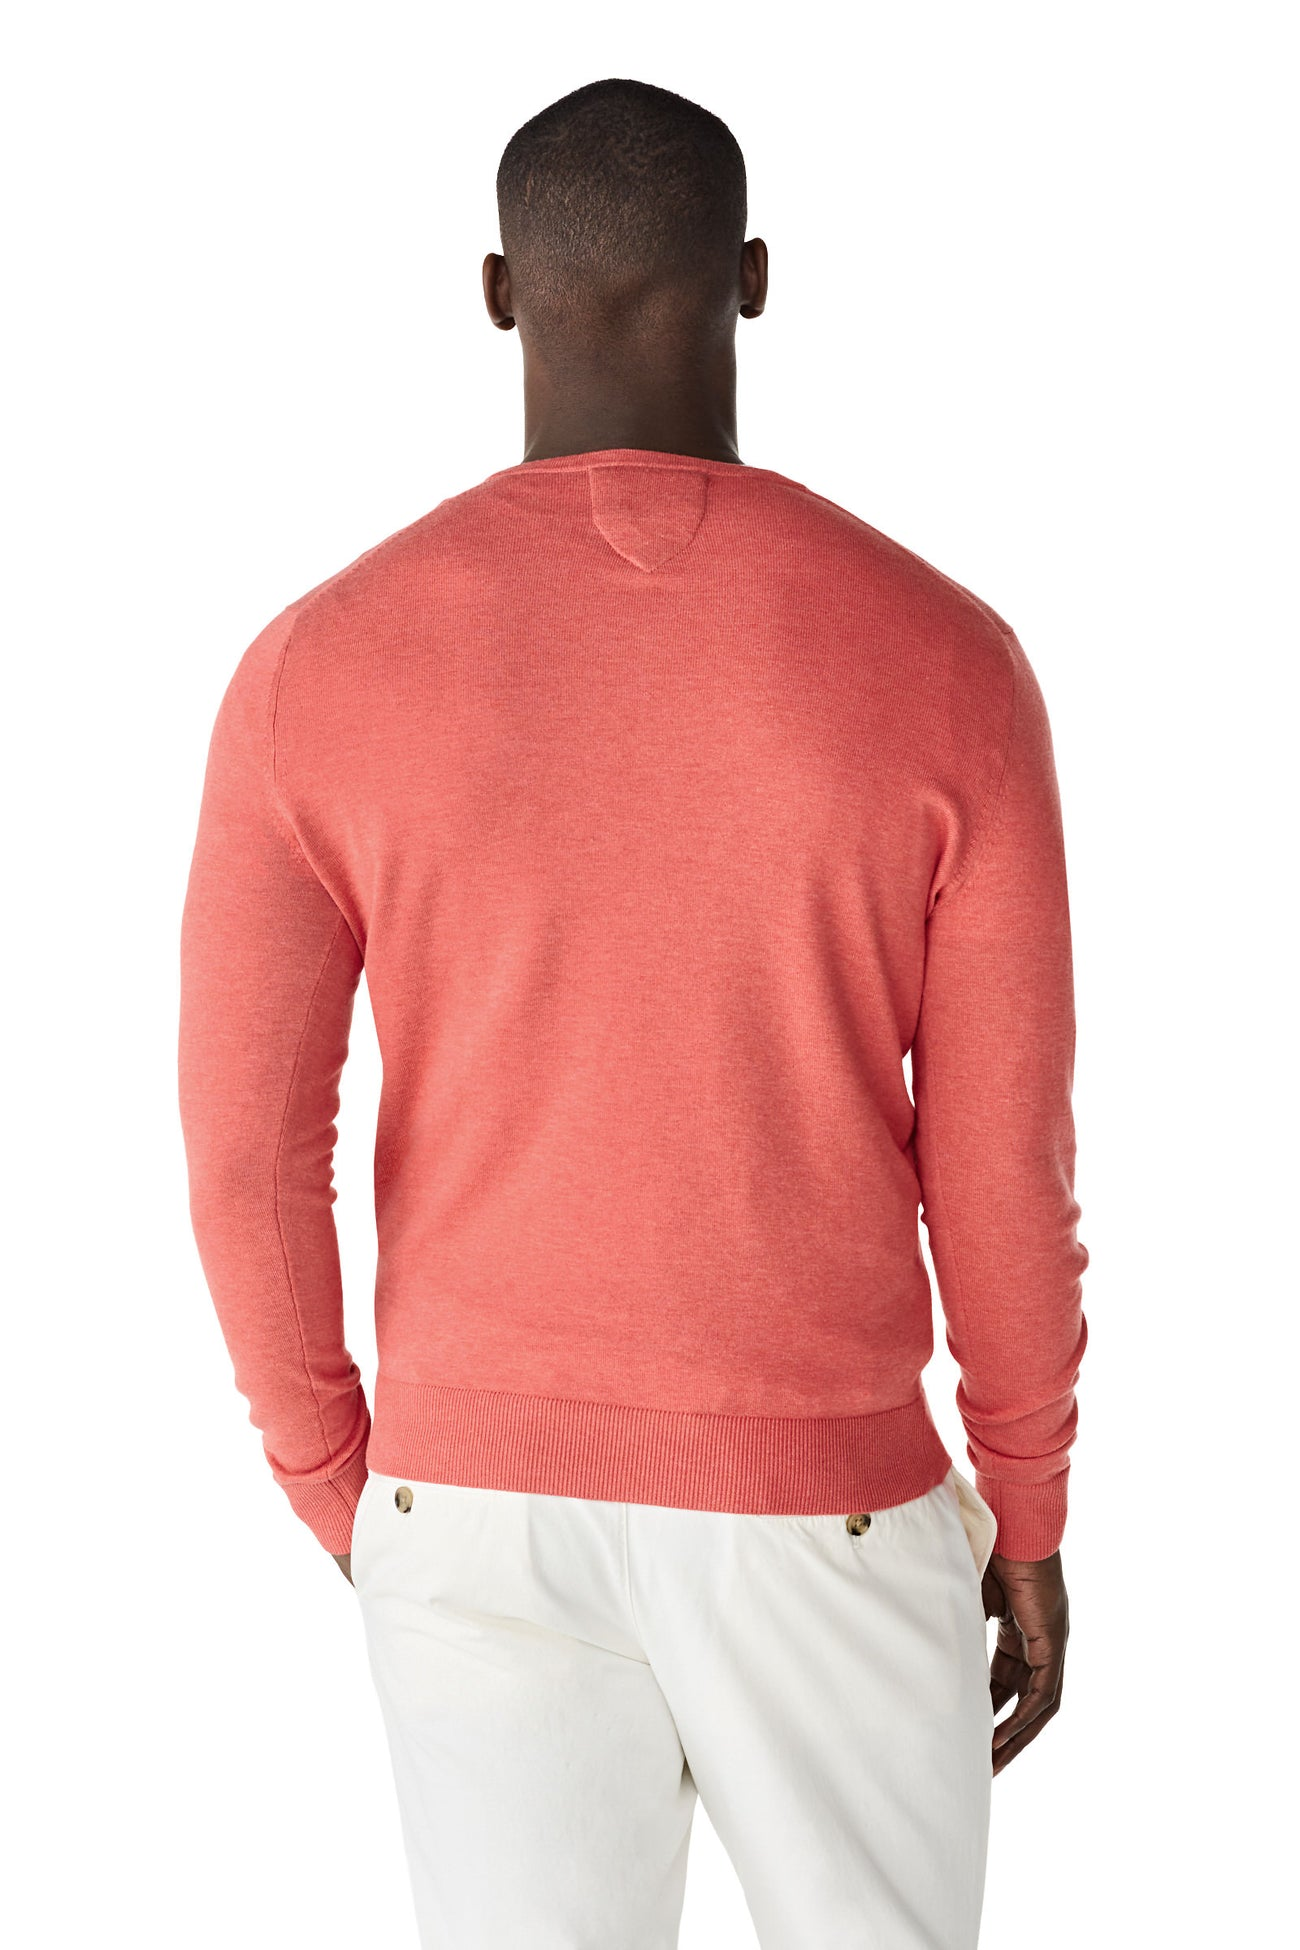 The McG Cotton Silk V Sweater